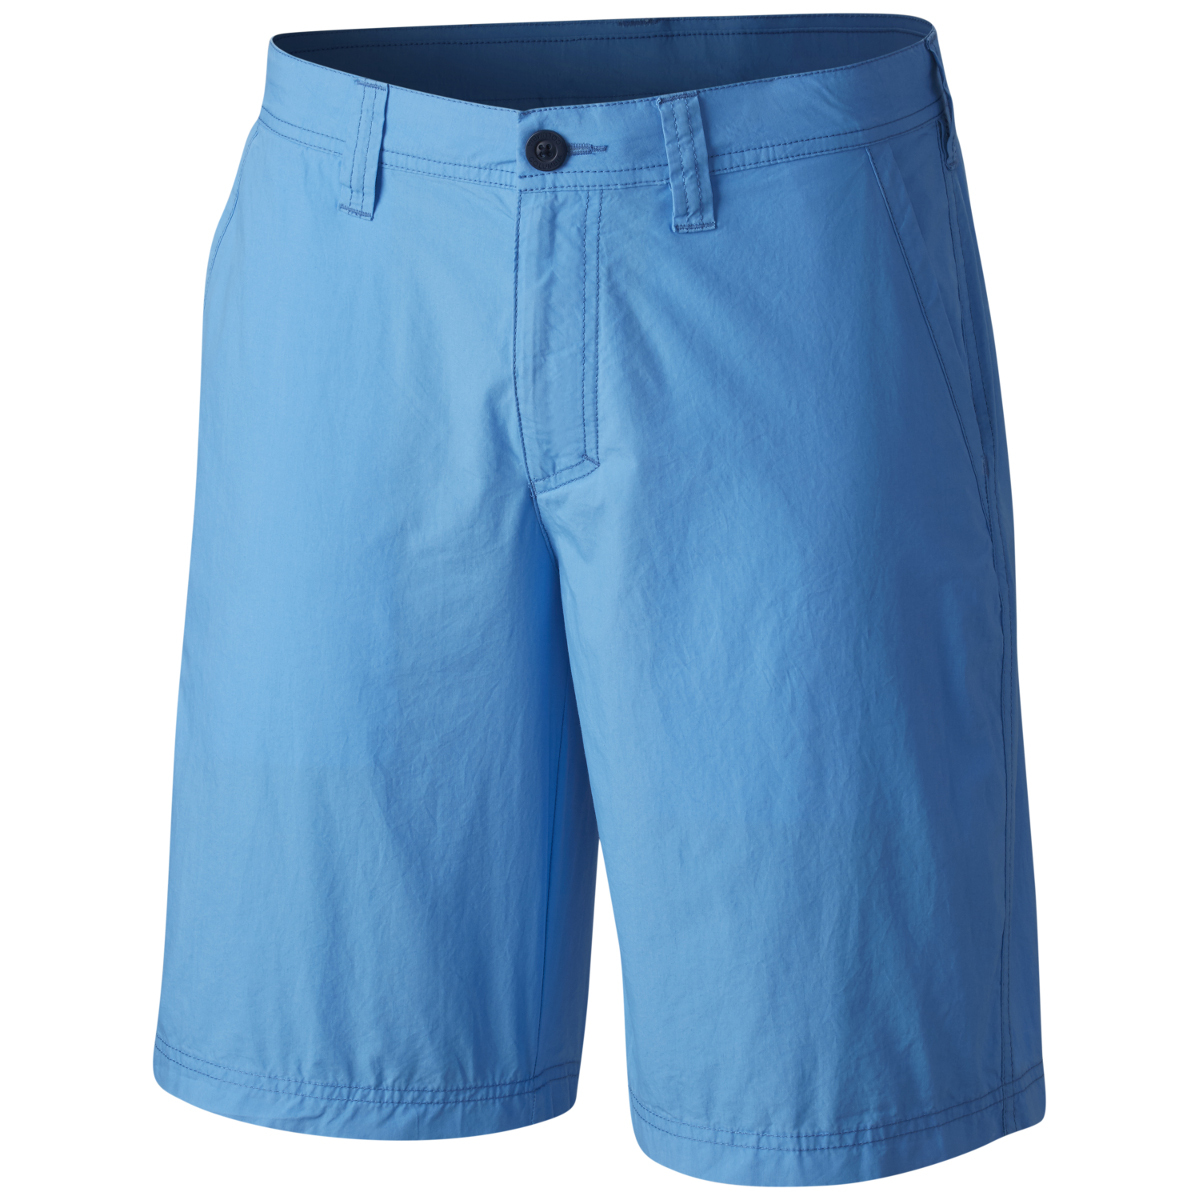 Columbia Men's Washed Out Shorts - Blue, 30